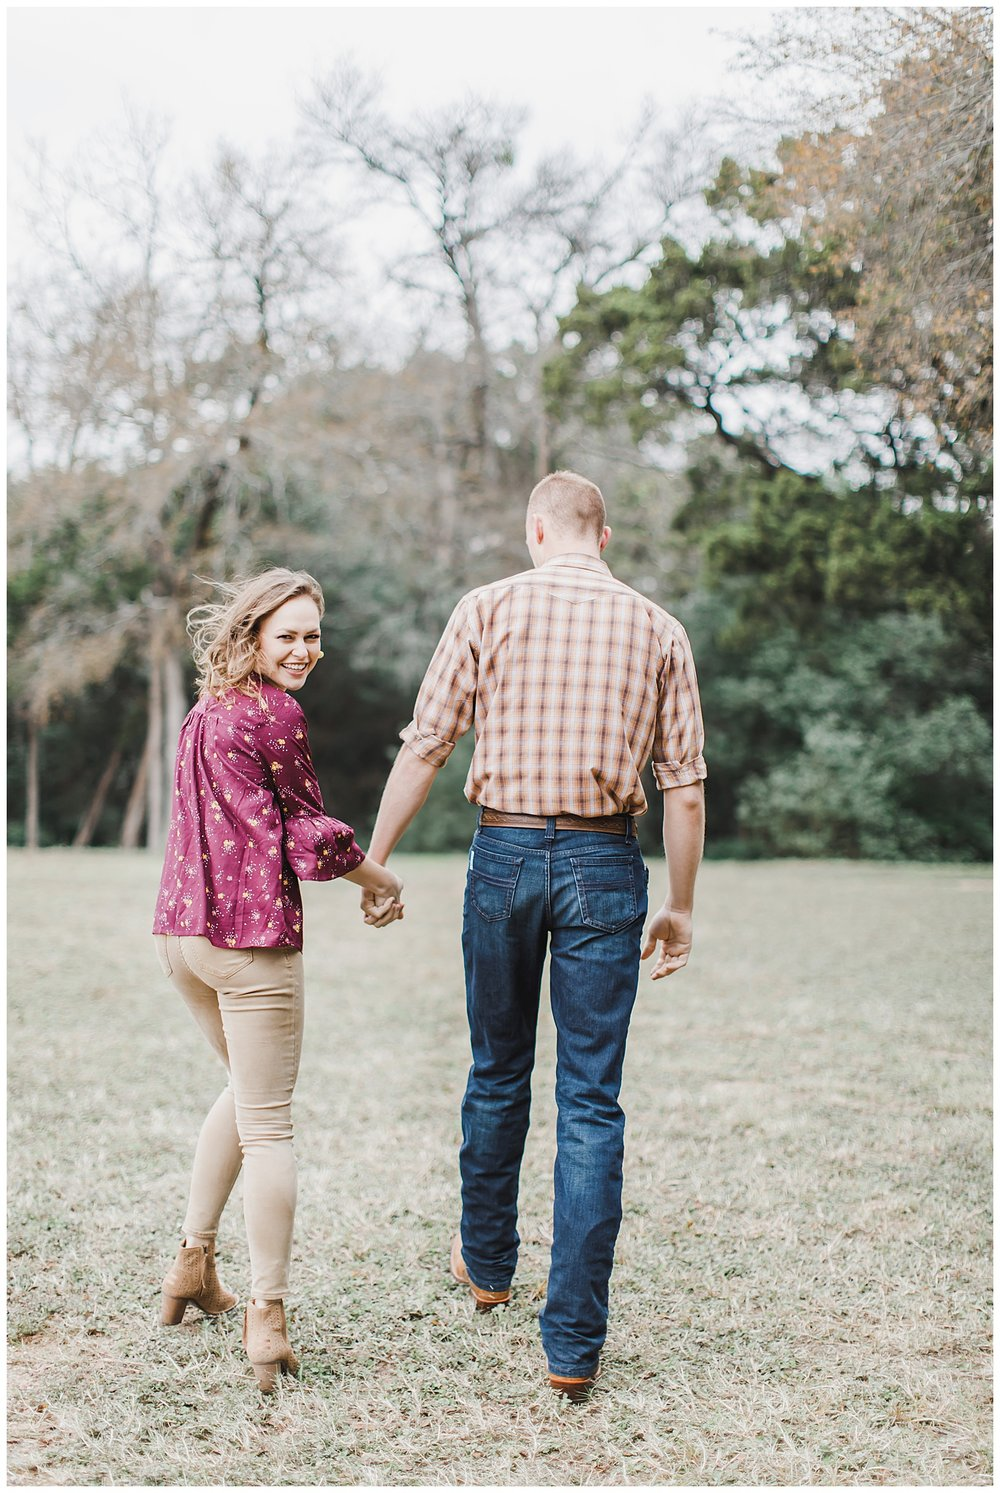 Libby & Jeff - Central Texas Waco Austin Dallas Wedding Engagement Photographer11.jpg